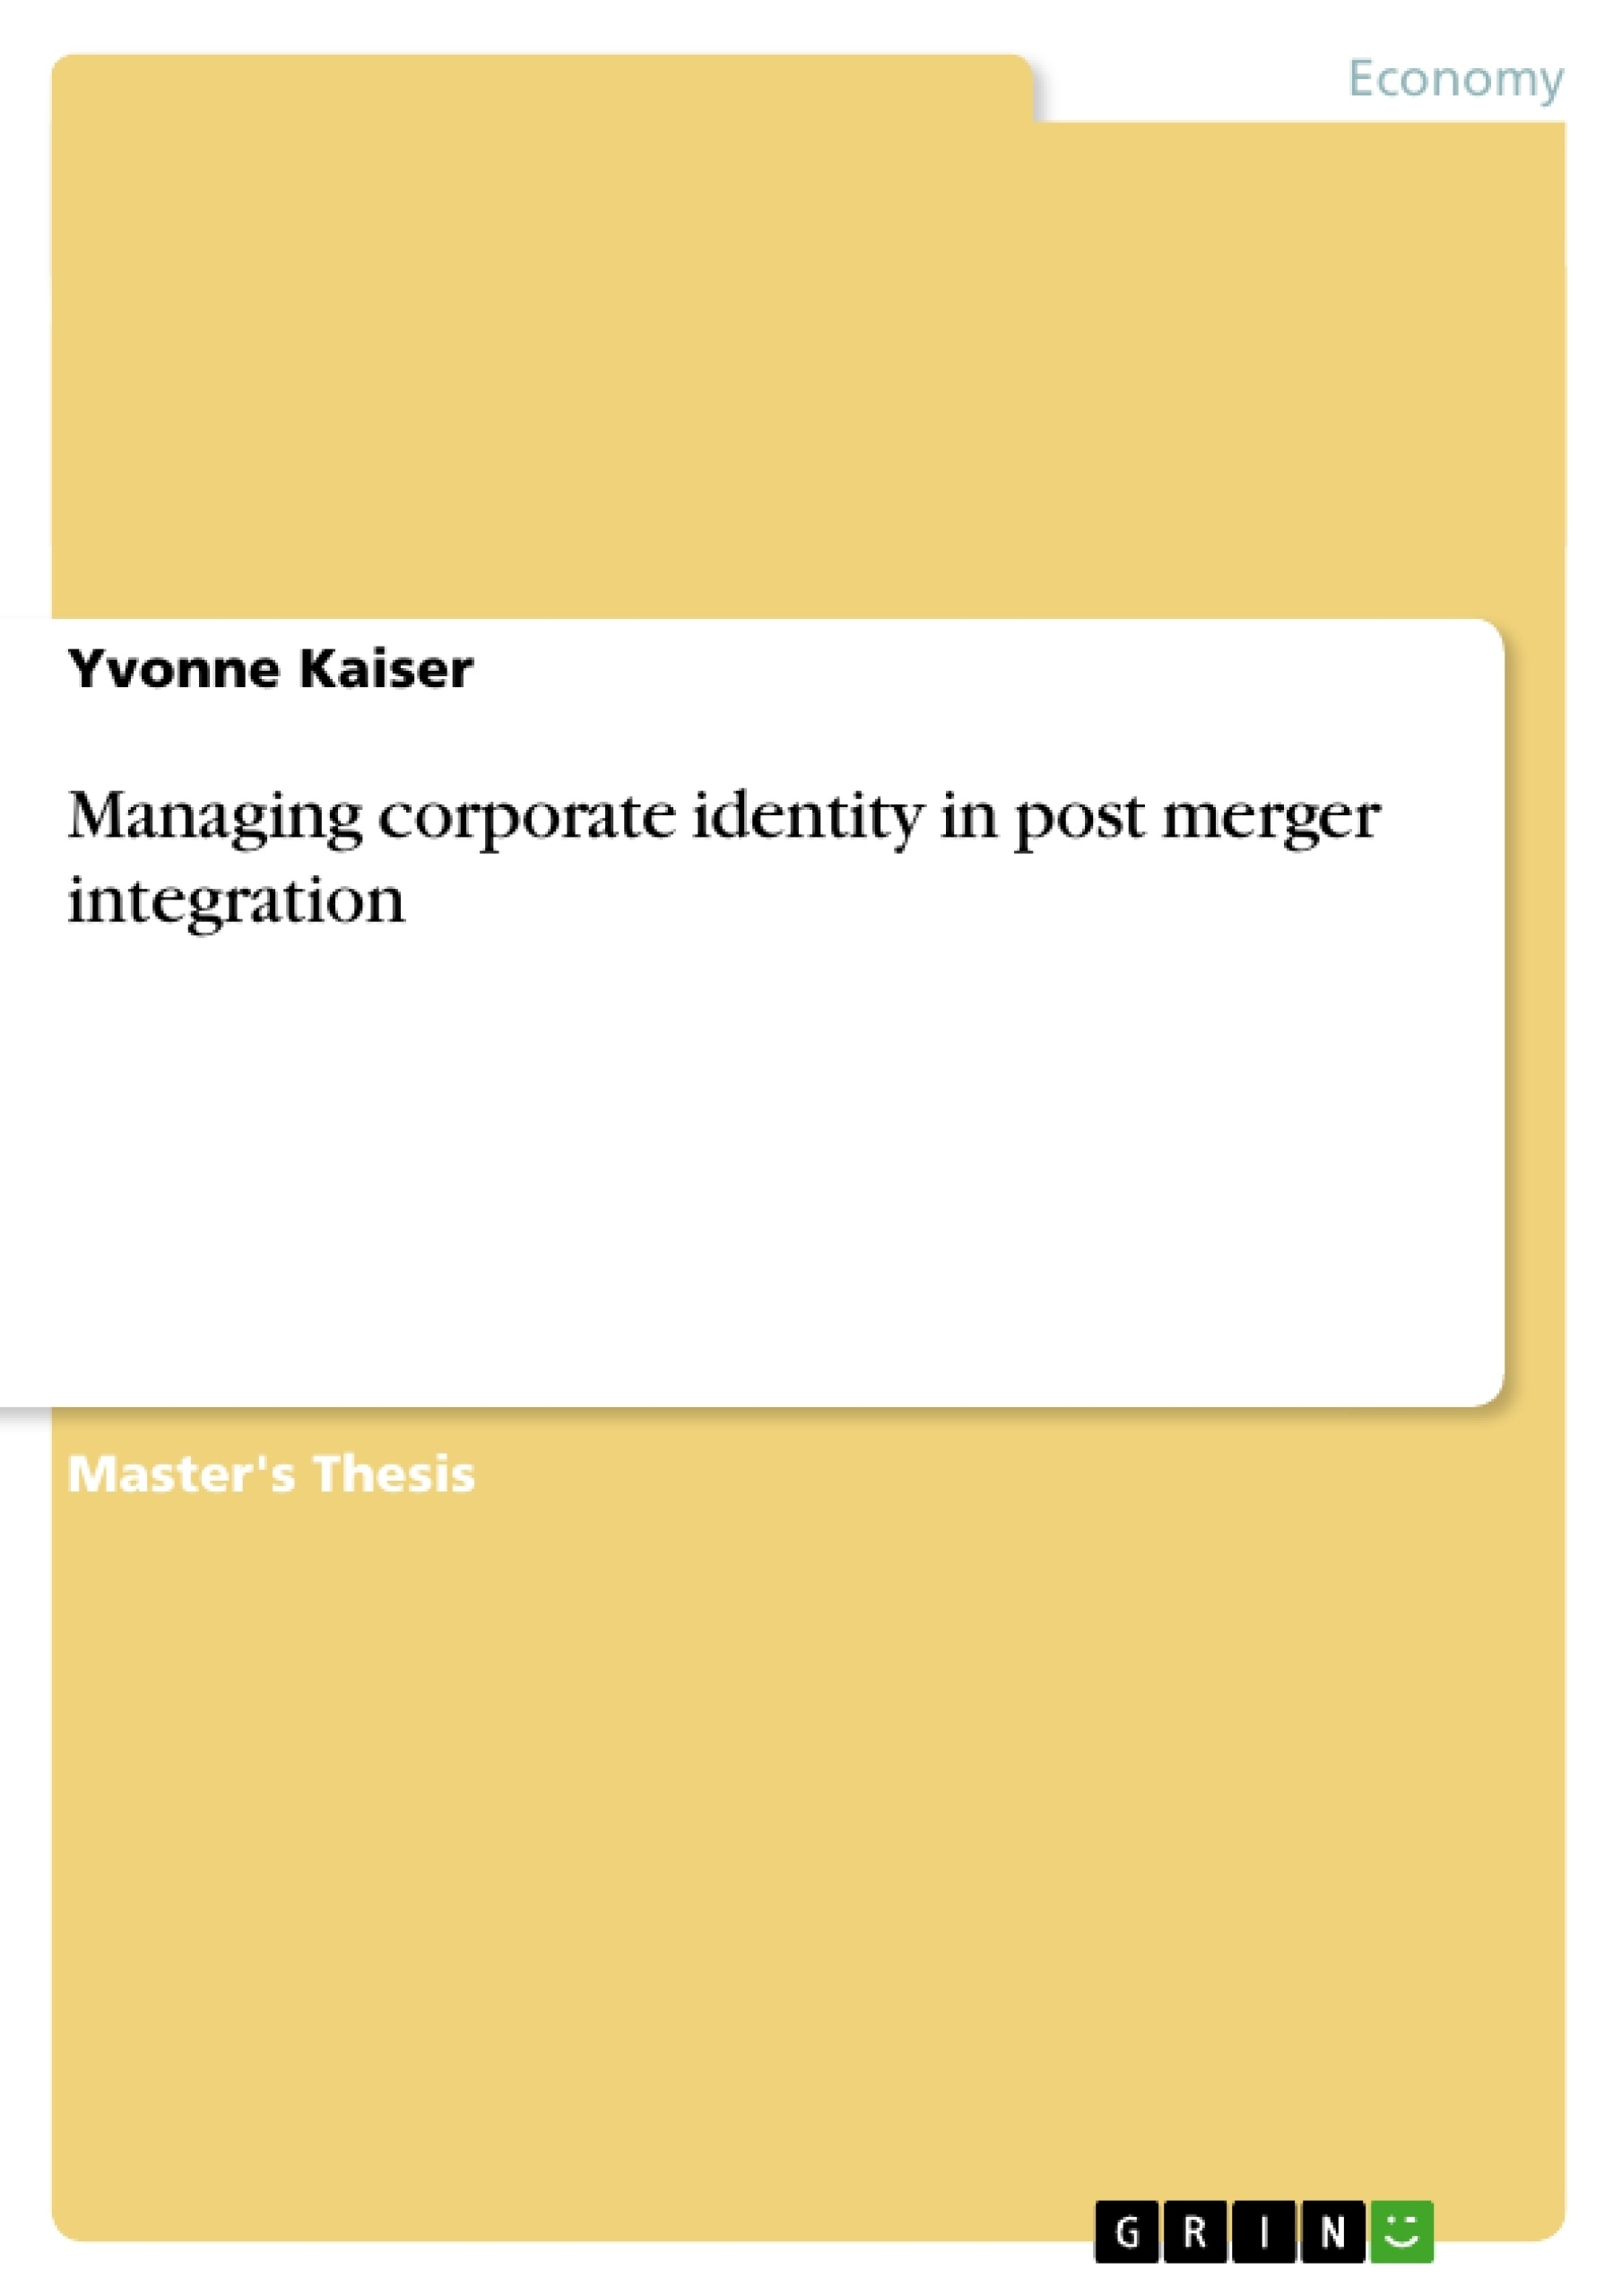 Title: Managing corporate identity in post merger integration